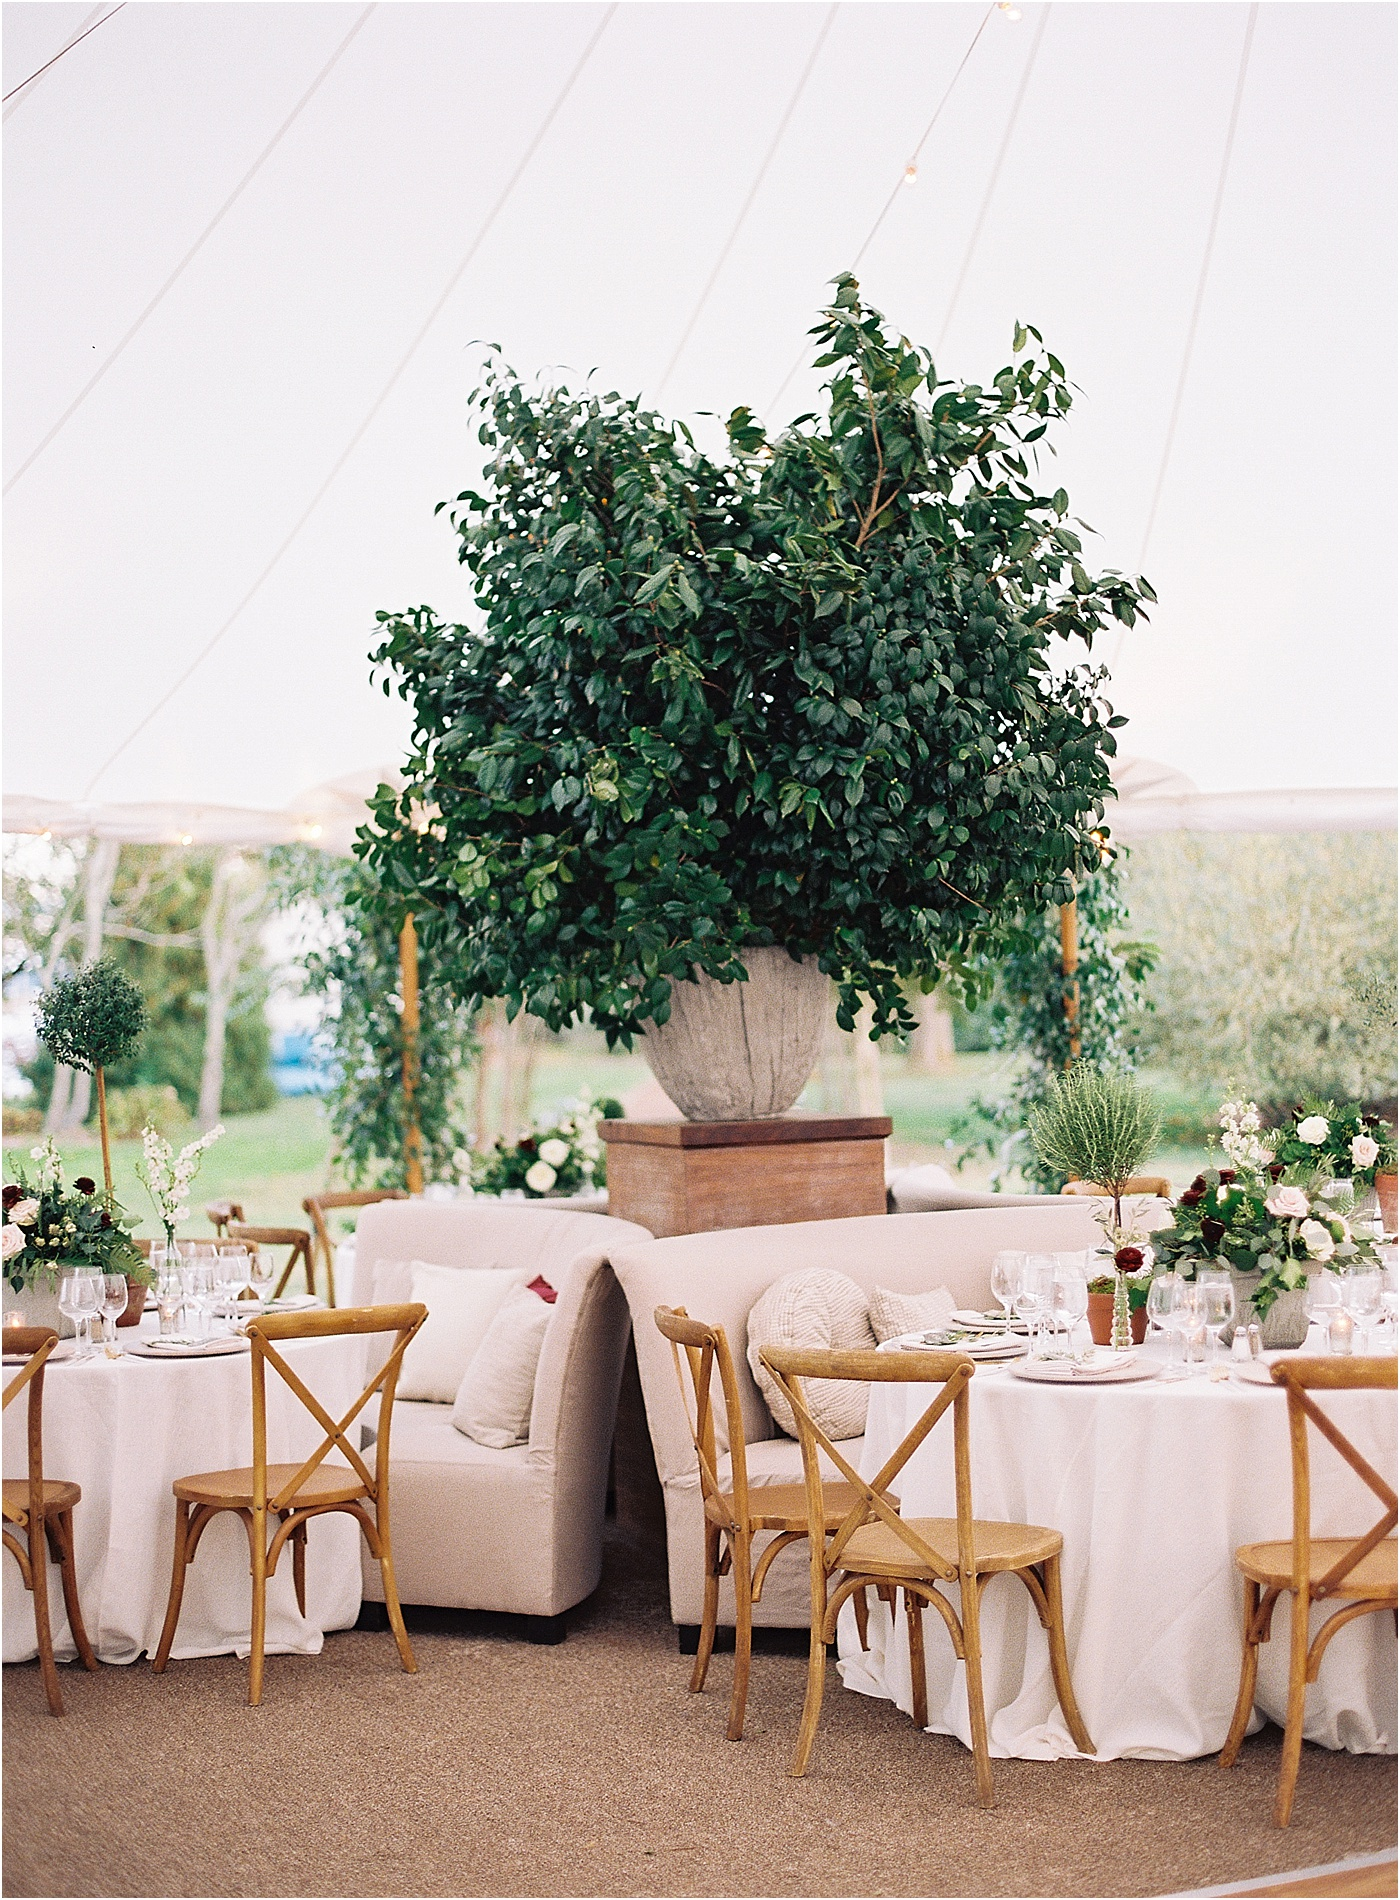 napa valley east coast vibe wedding sailcoth tent greenery